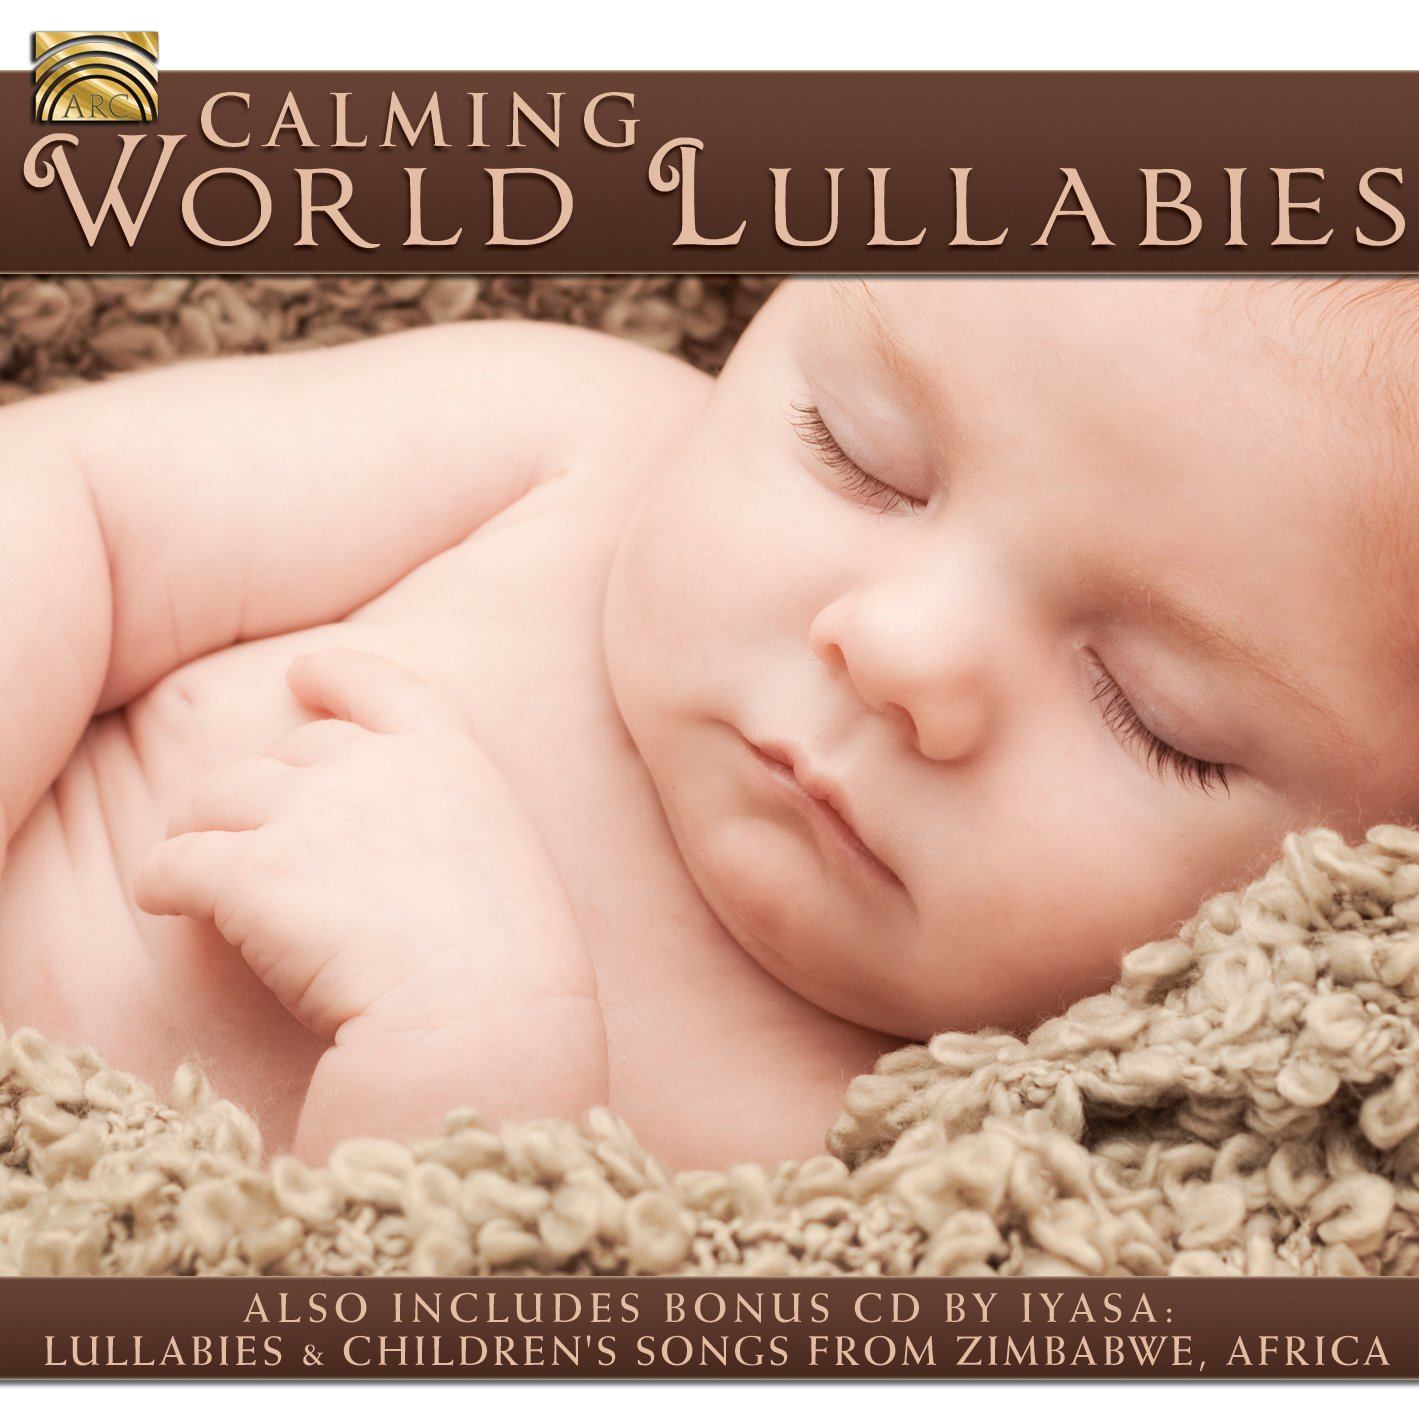 Calming World Lullabies (Includes bonus CD by Iyasa: Lullabies & Children's Songs from Zimbabwe, Africa) by Arc Music